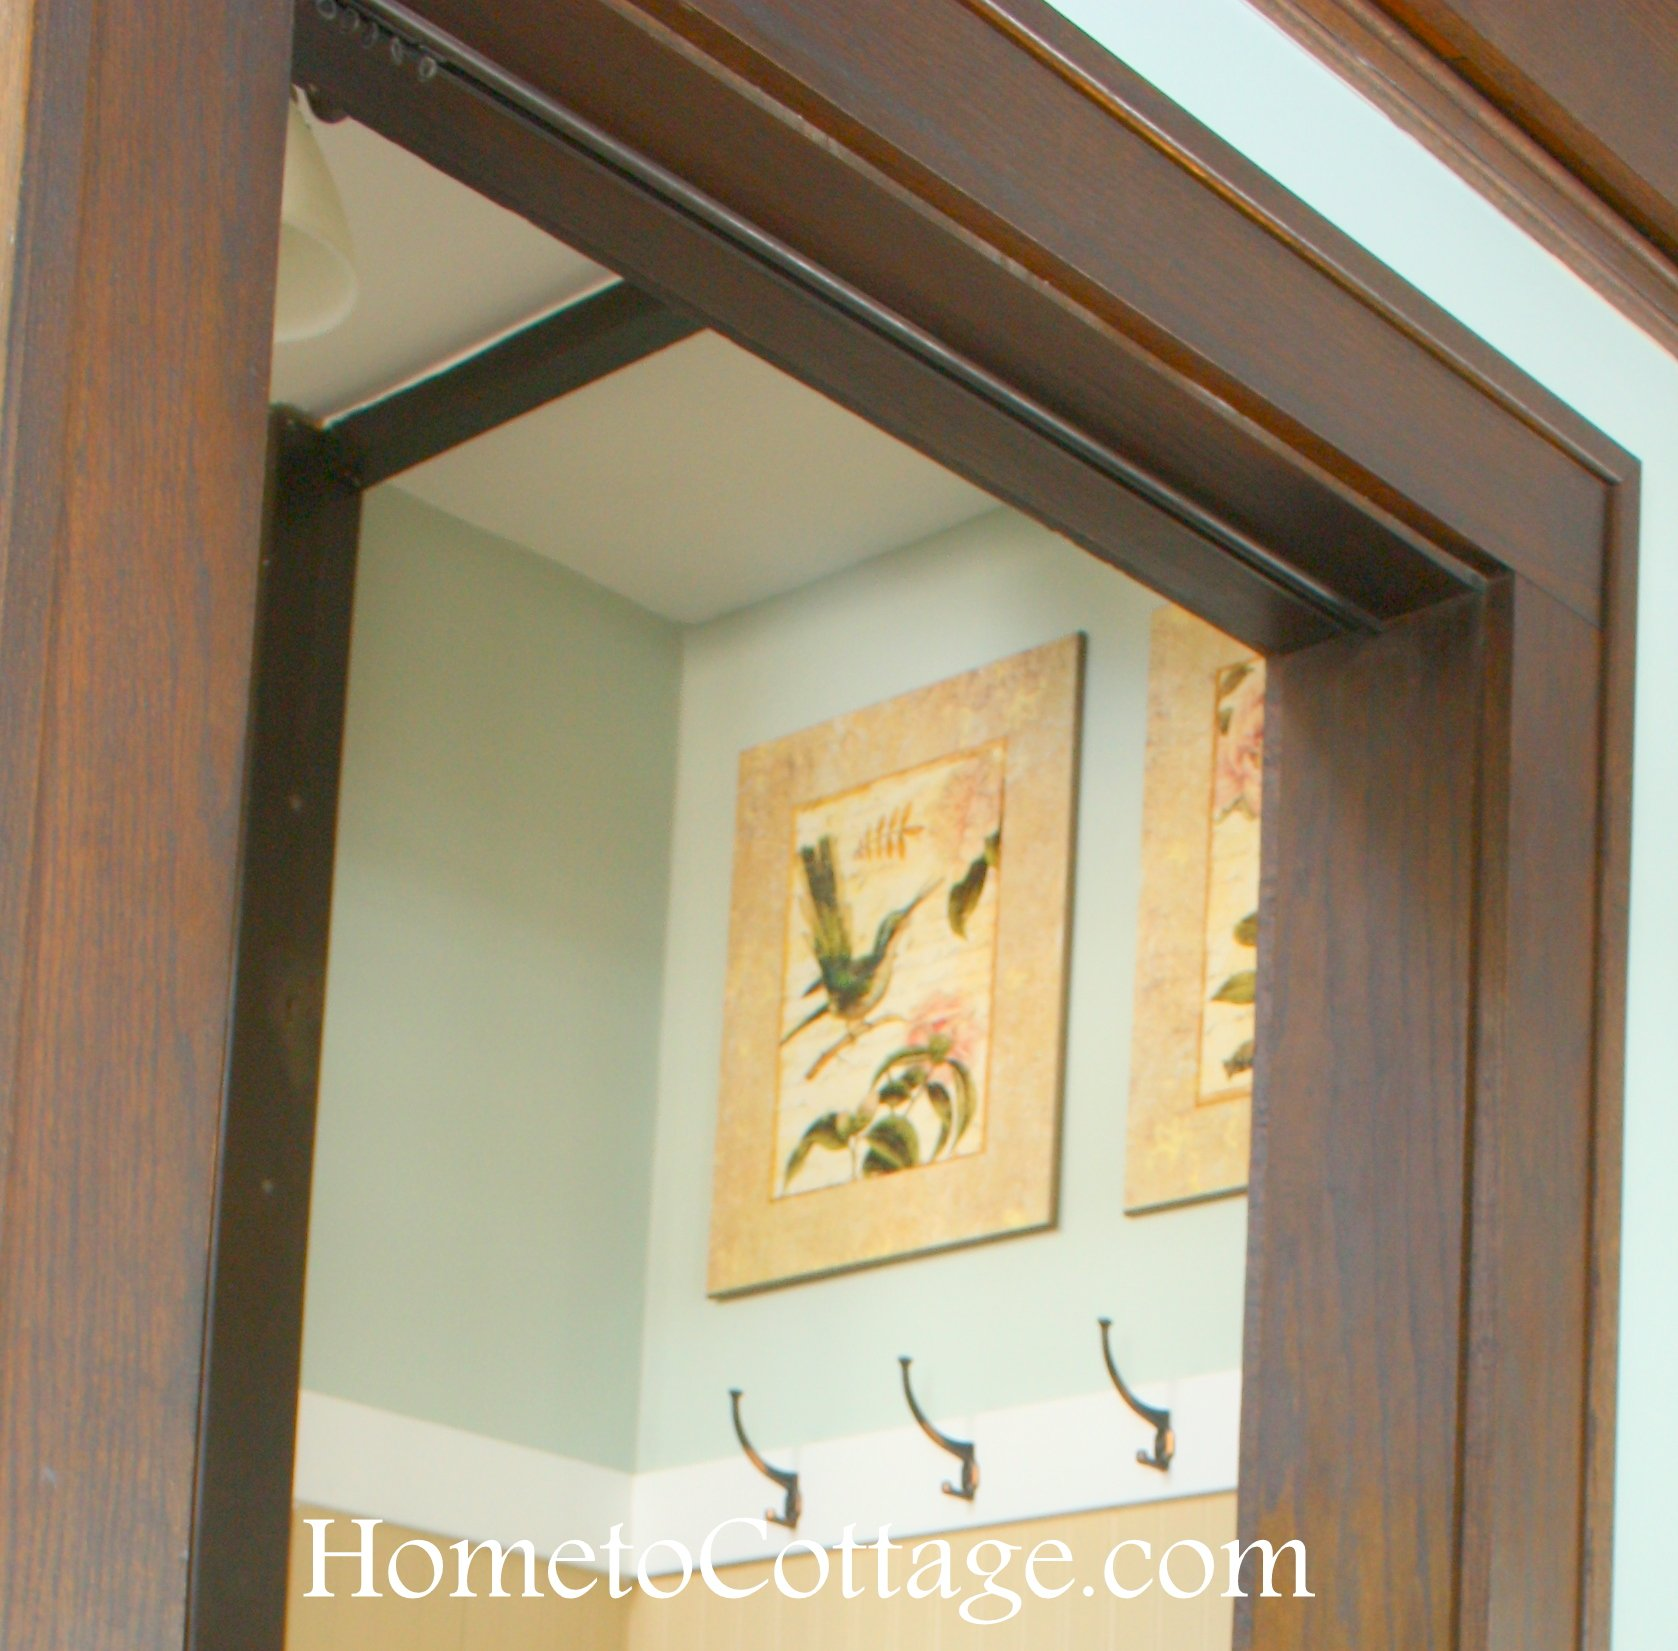 HometoCottage.com craftsman style house with built in rings for doorway curtain